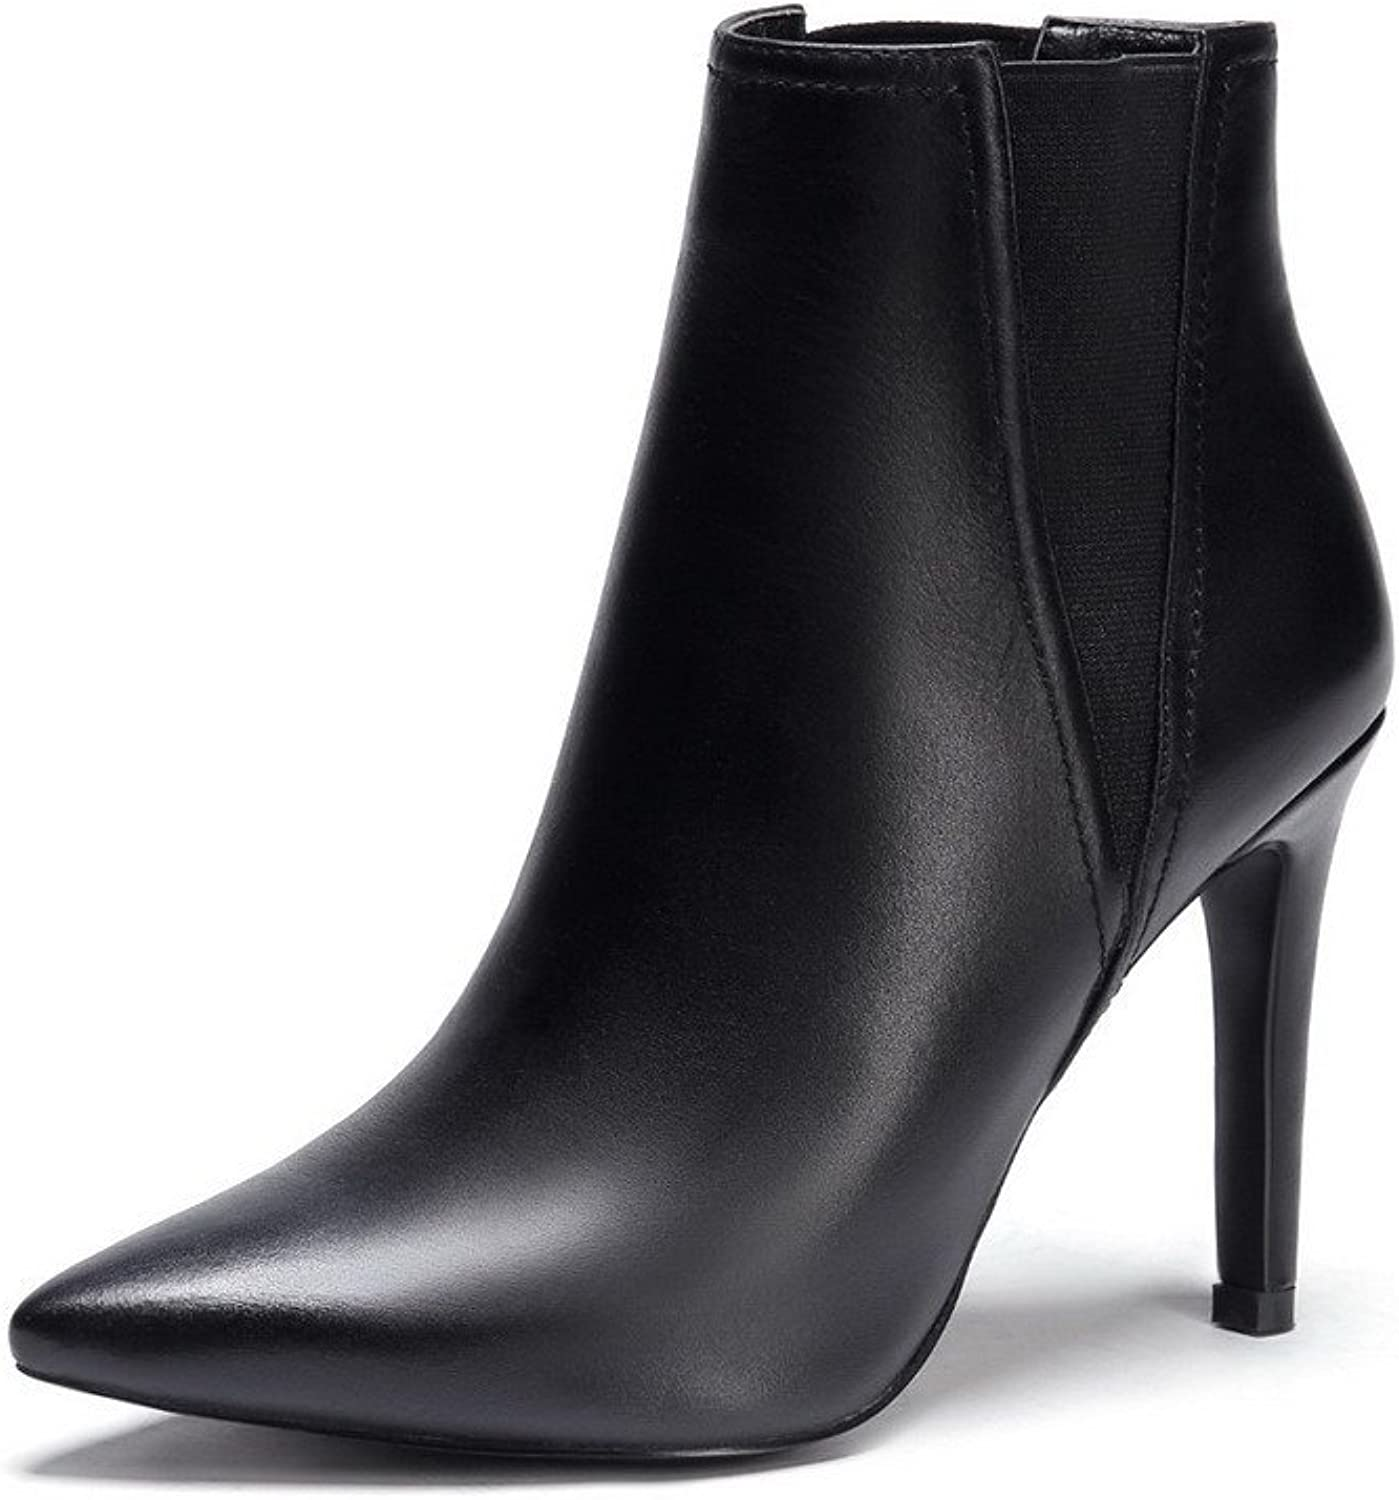 WeenFashion Women's Cow Leather High-heels Pointed-toe Boots with Winkle Pinker and Stiletto